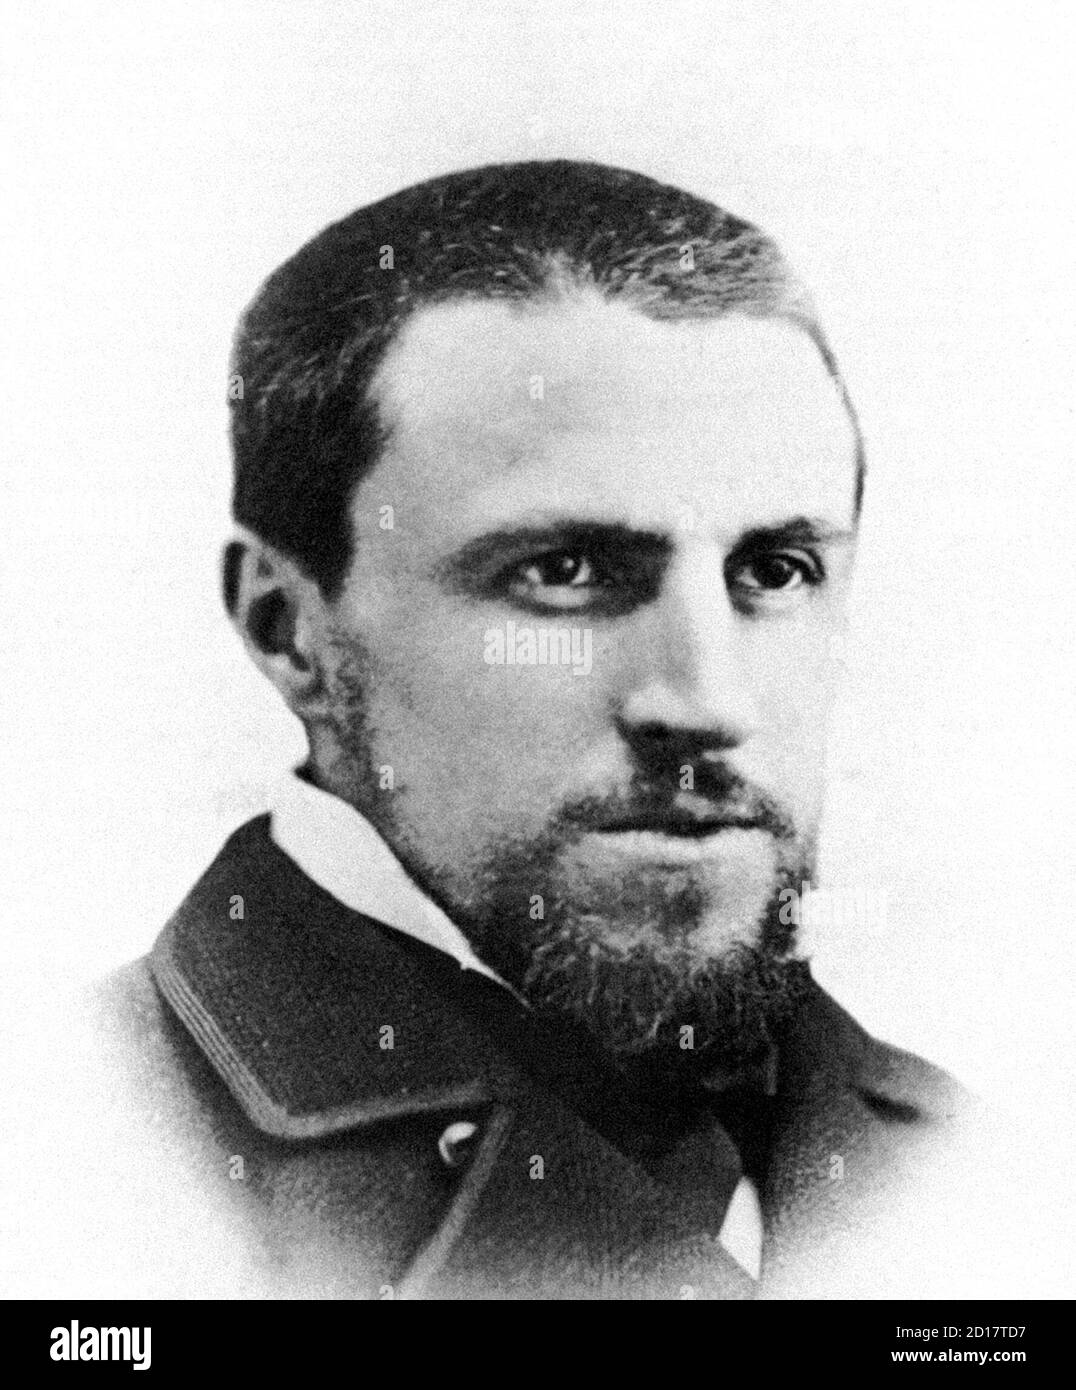 Gustave Caillebotte (1848-1894), portrait, c.1878 Stock Photo